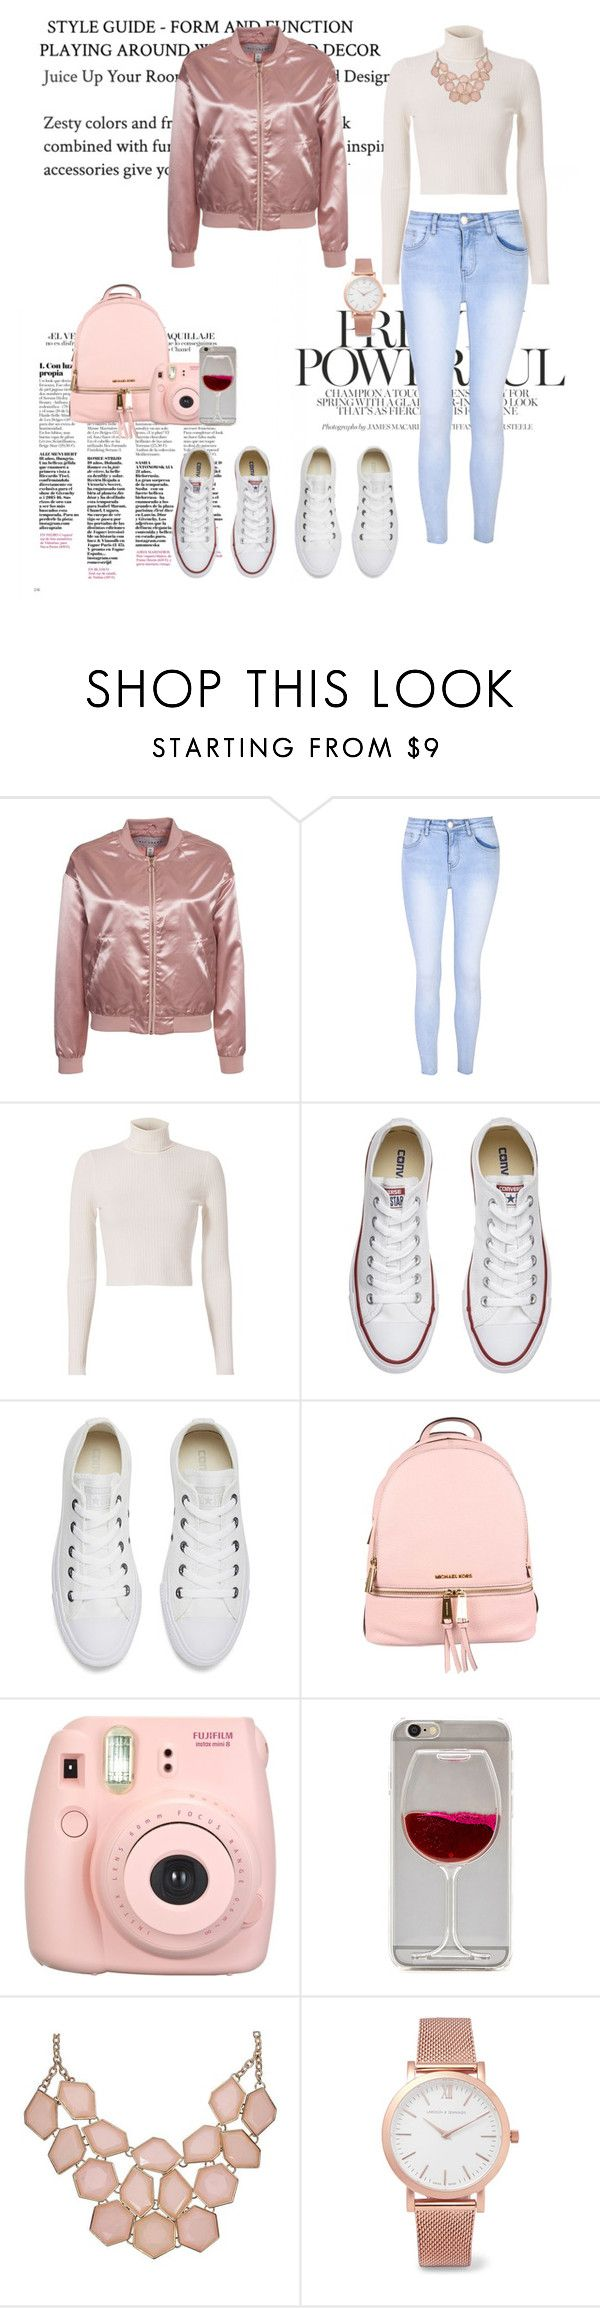 """""""Pink bomber jacket & Blue Jeans"""" by irina-savis ❤ liked on Polyvore featuring NLY Trend, Glamorous, A.L.C., Converse, MICHAEL Michael Kors, Fujifilm, Larsson & Jennings, bluejeans and pinkjacet"""